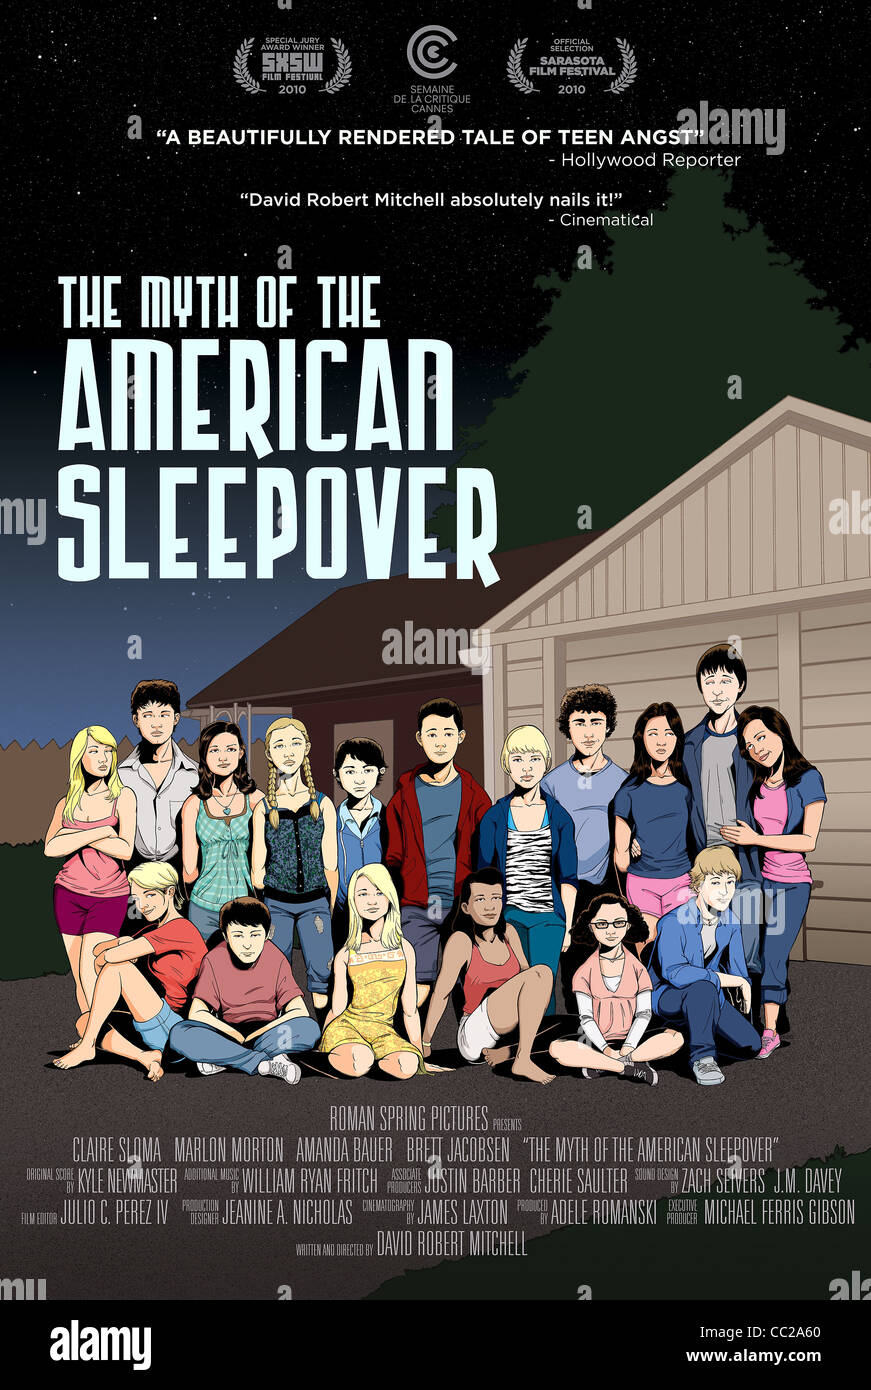 MOVIE POSTER THE MYTH OF THE AMERICAN SLEEPOVER (2010) - Stock Image